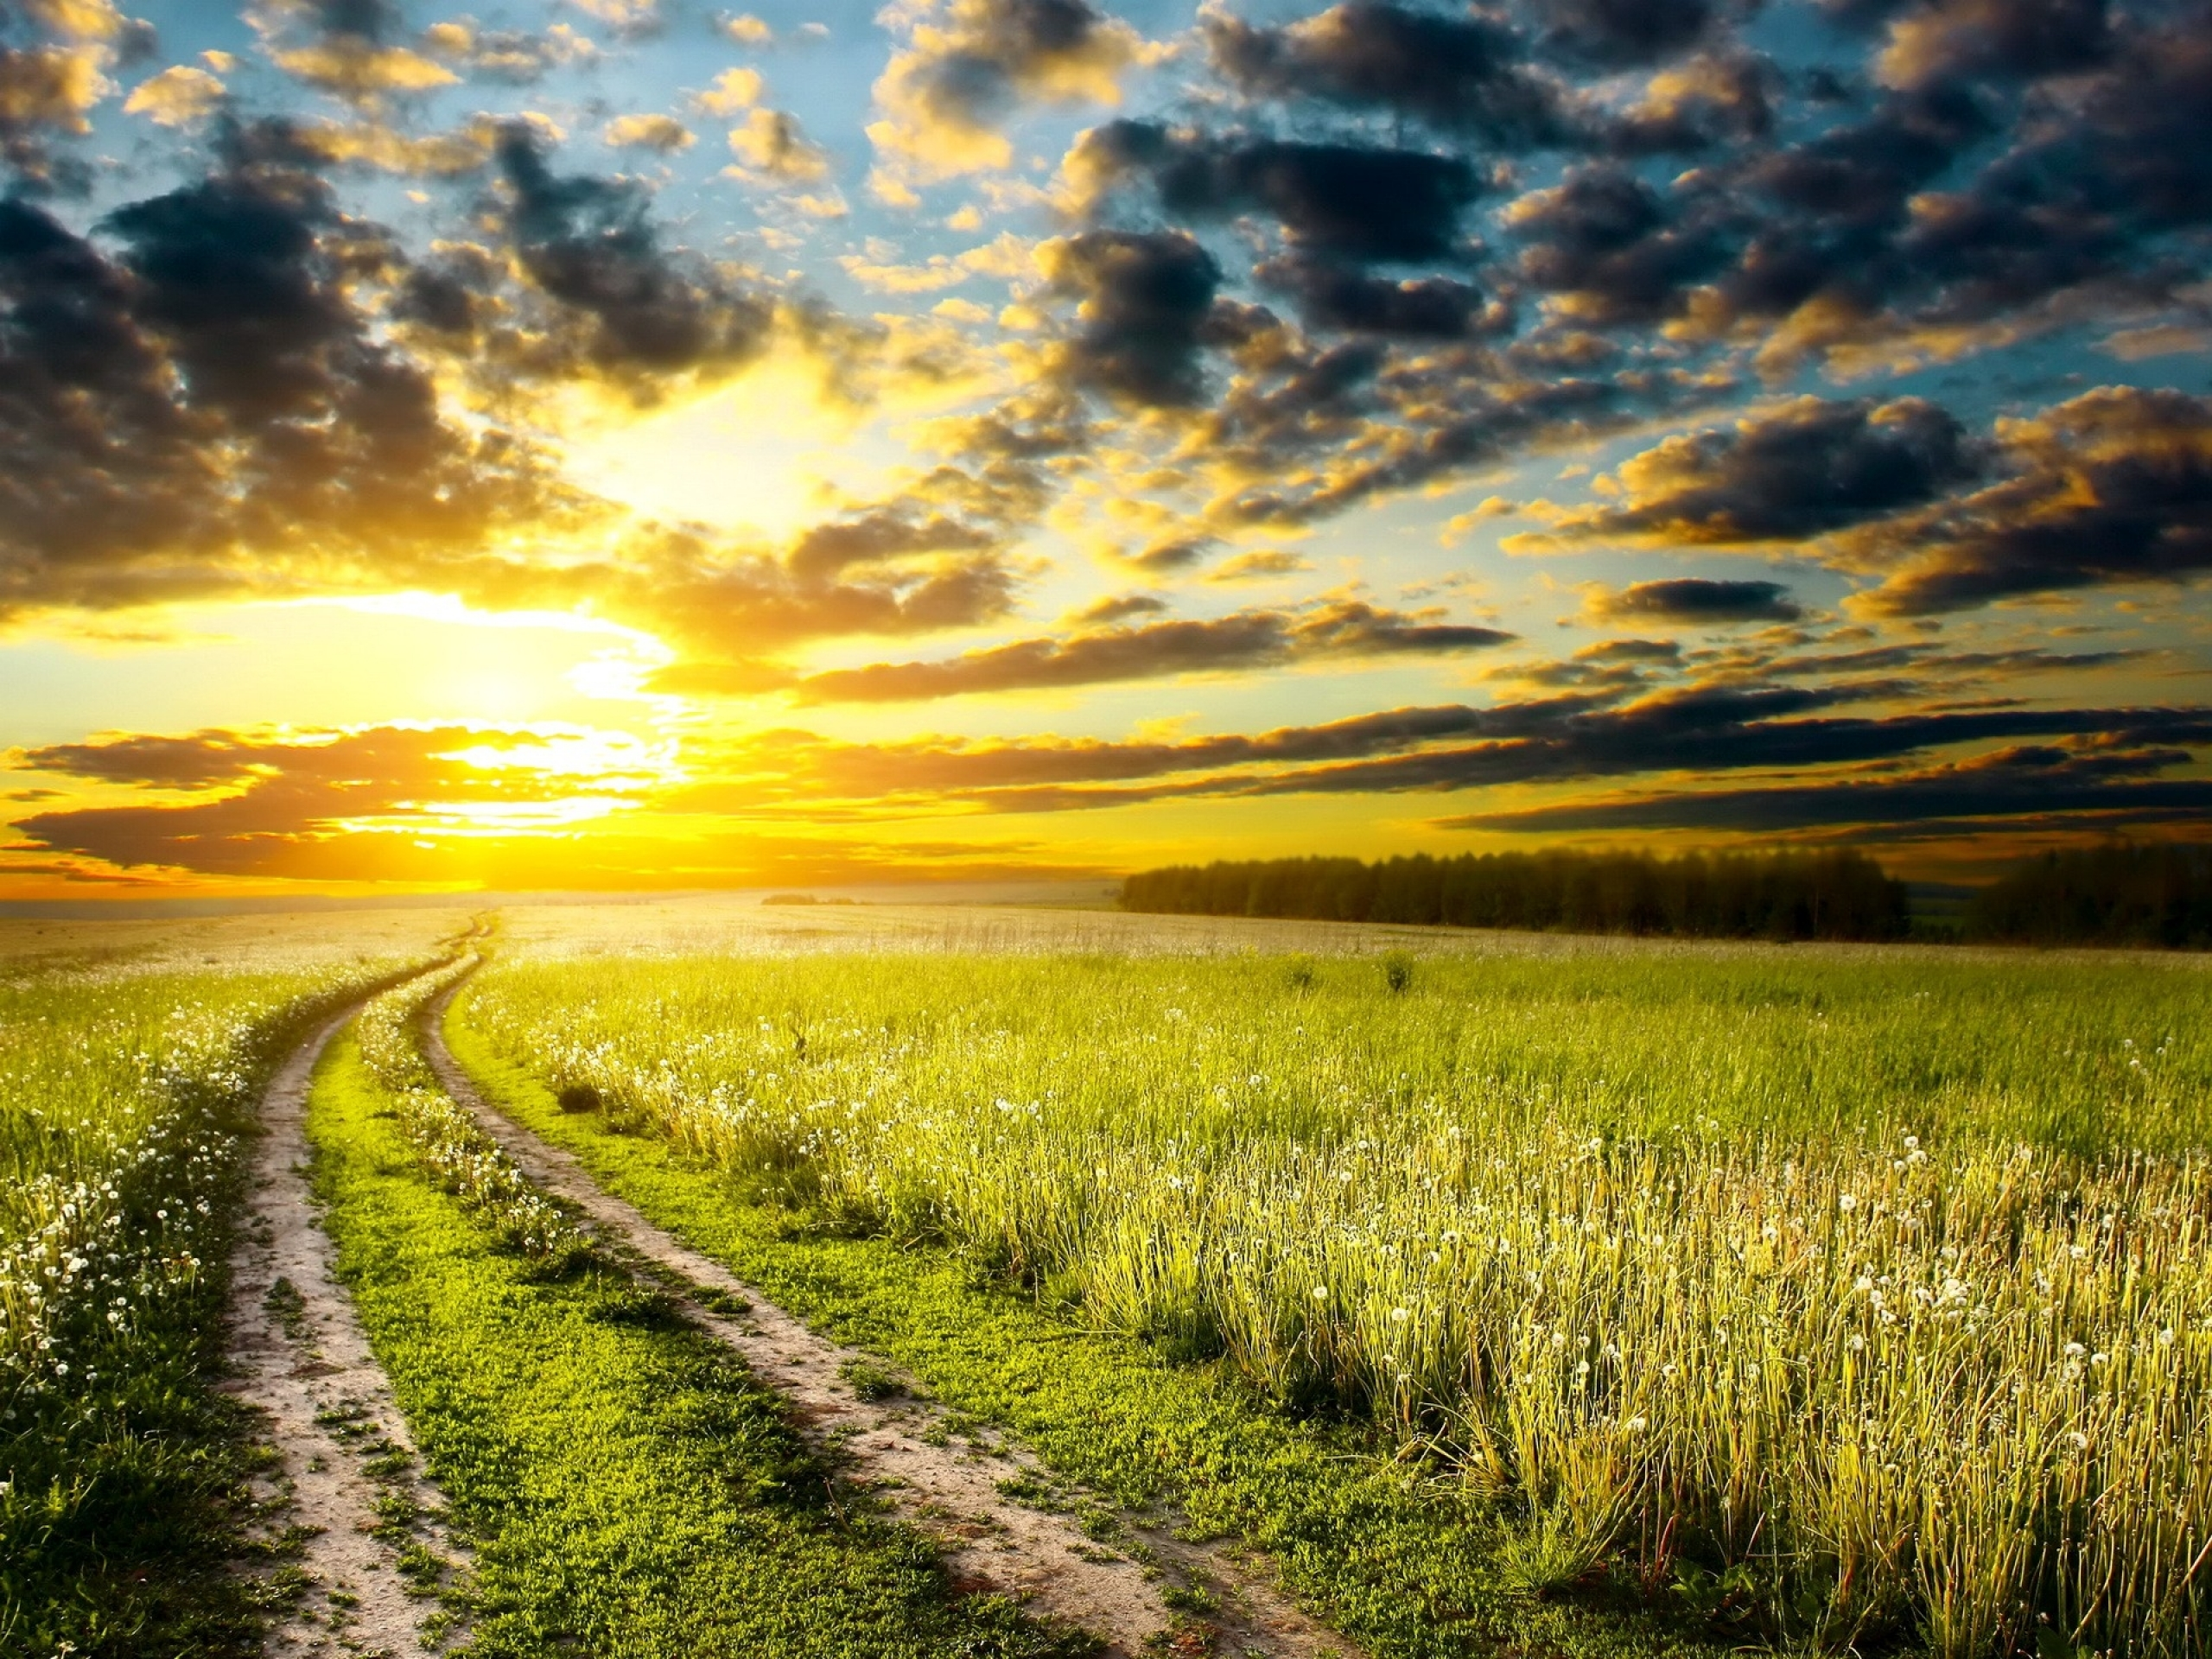 Awesome Bible Quotes Wallpaper Sun Clouds Road Amp Fields Wallpapers Sun Clouds Road